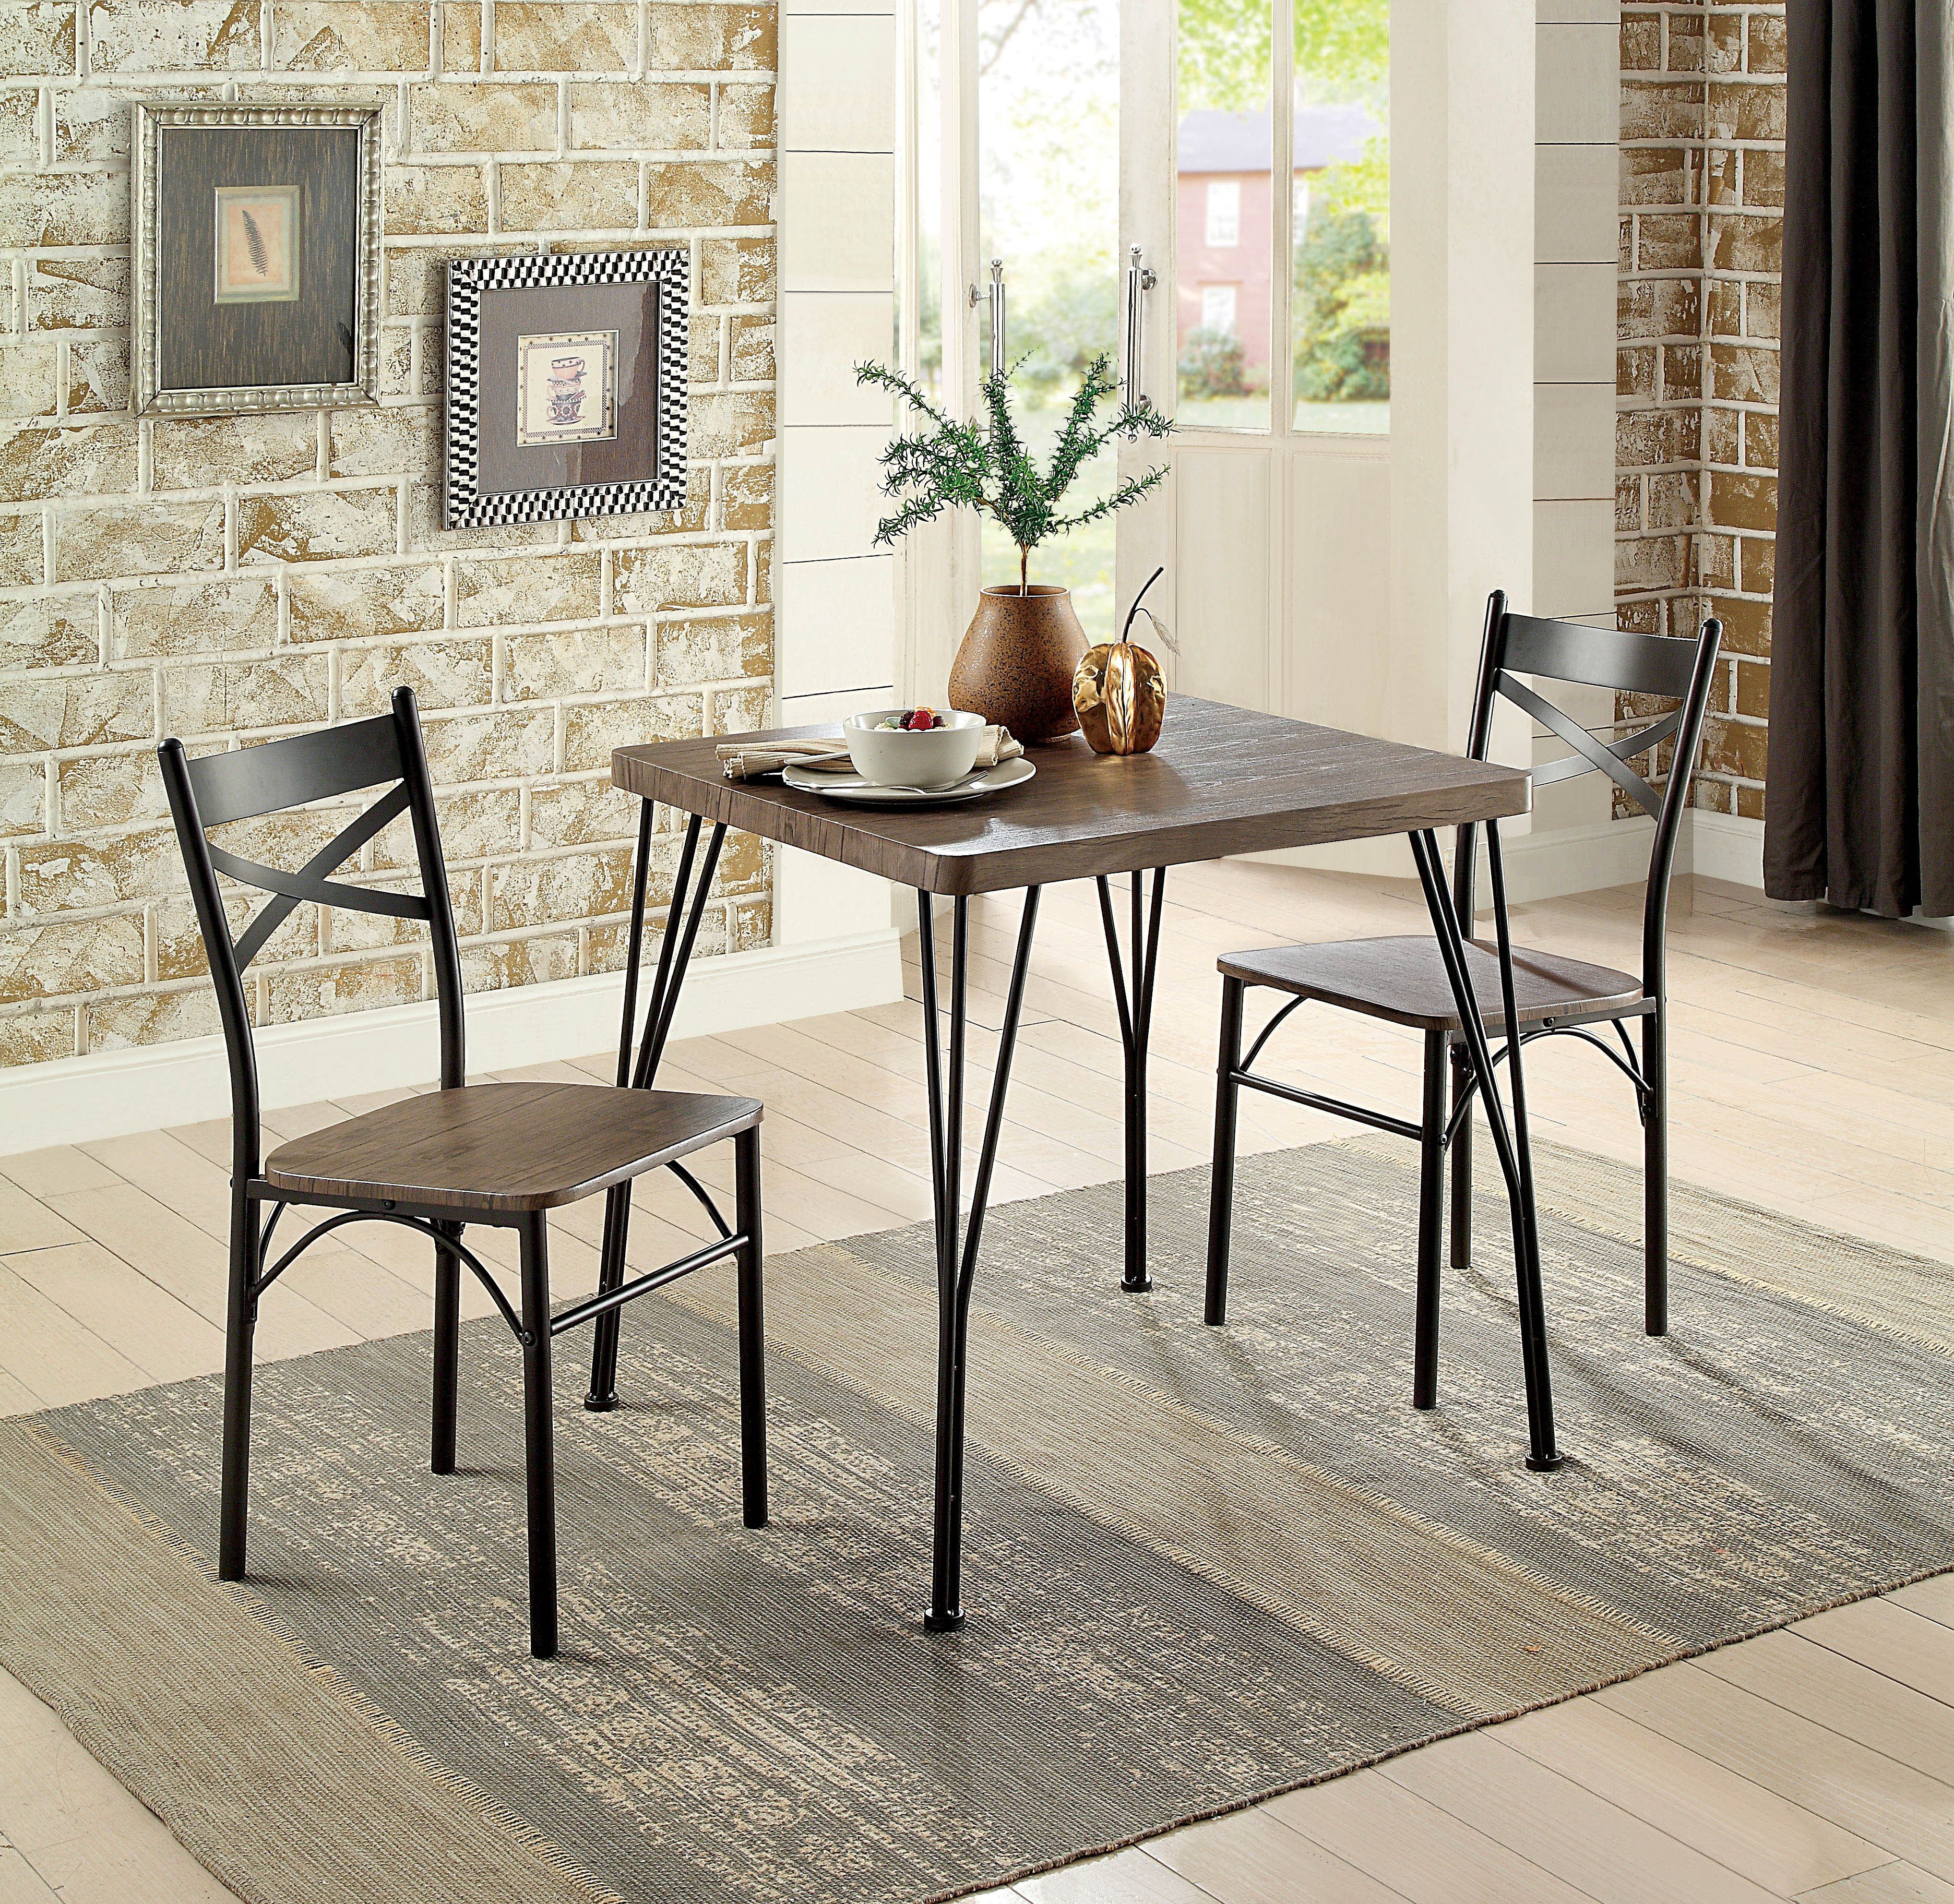 2019 Wiggs 5 Piece Dining Sets Intended For Guertin 3 Piece Dining Set & Reviews (View 1 of 25)